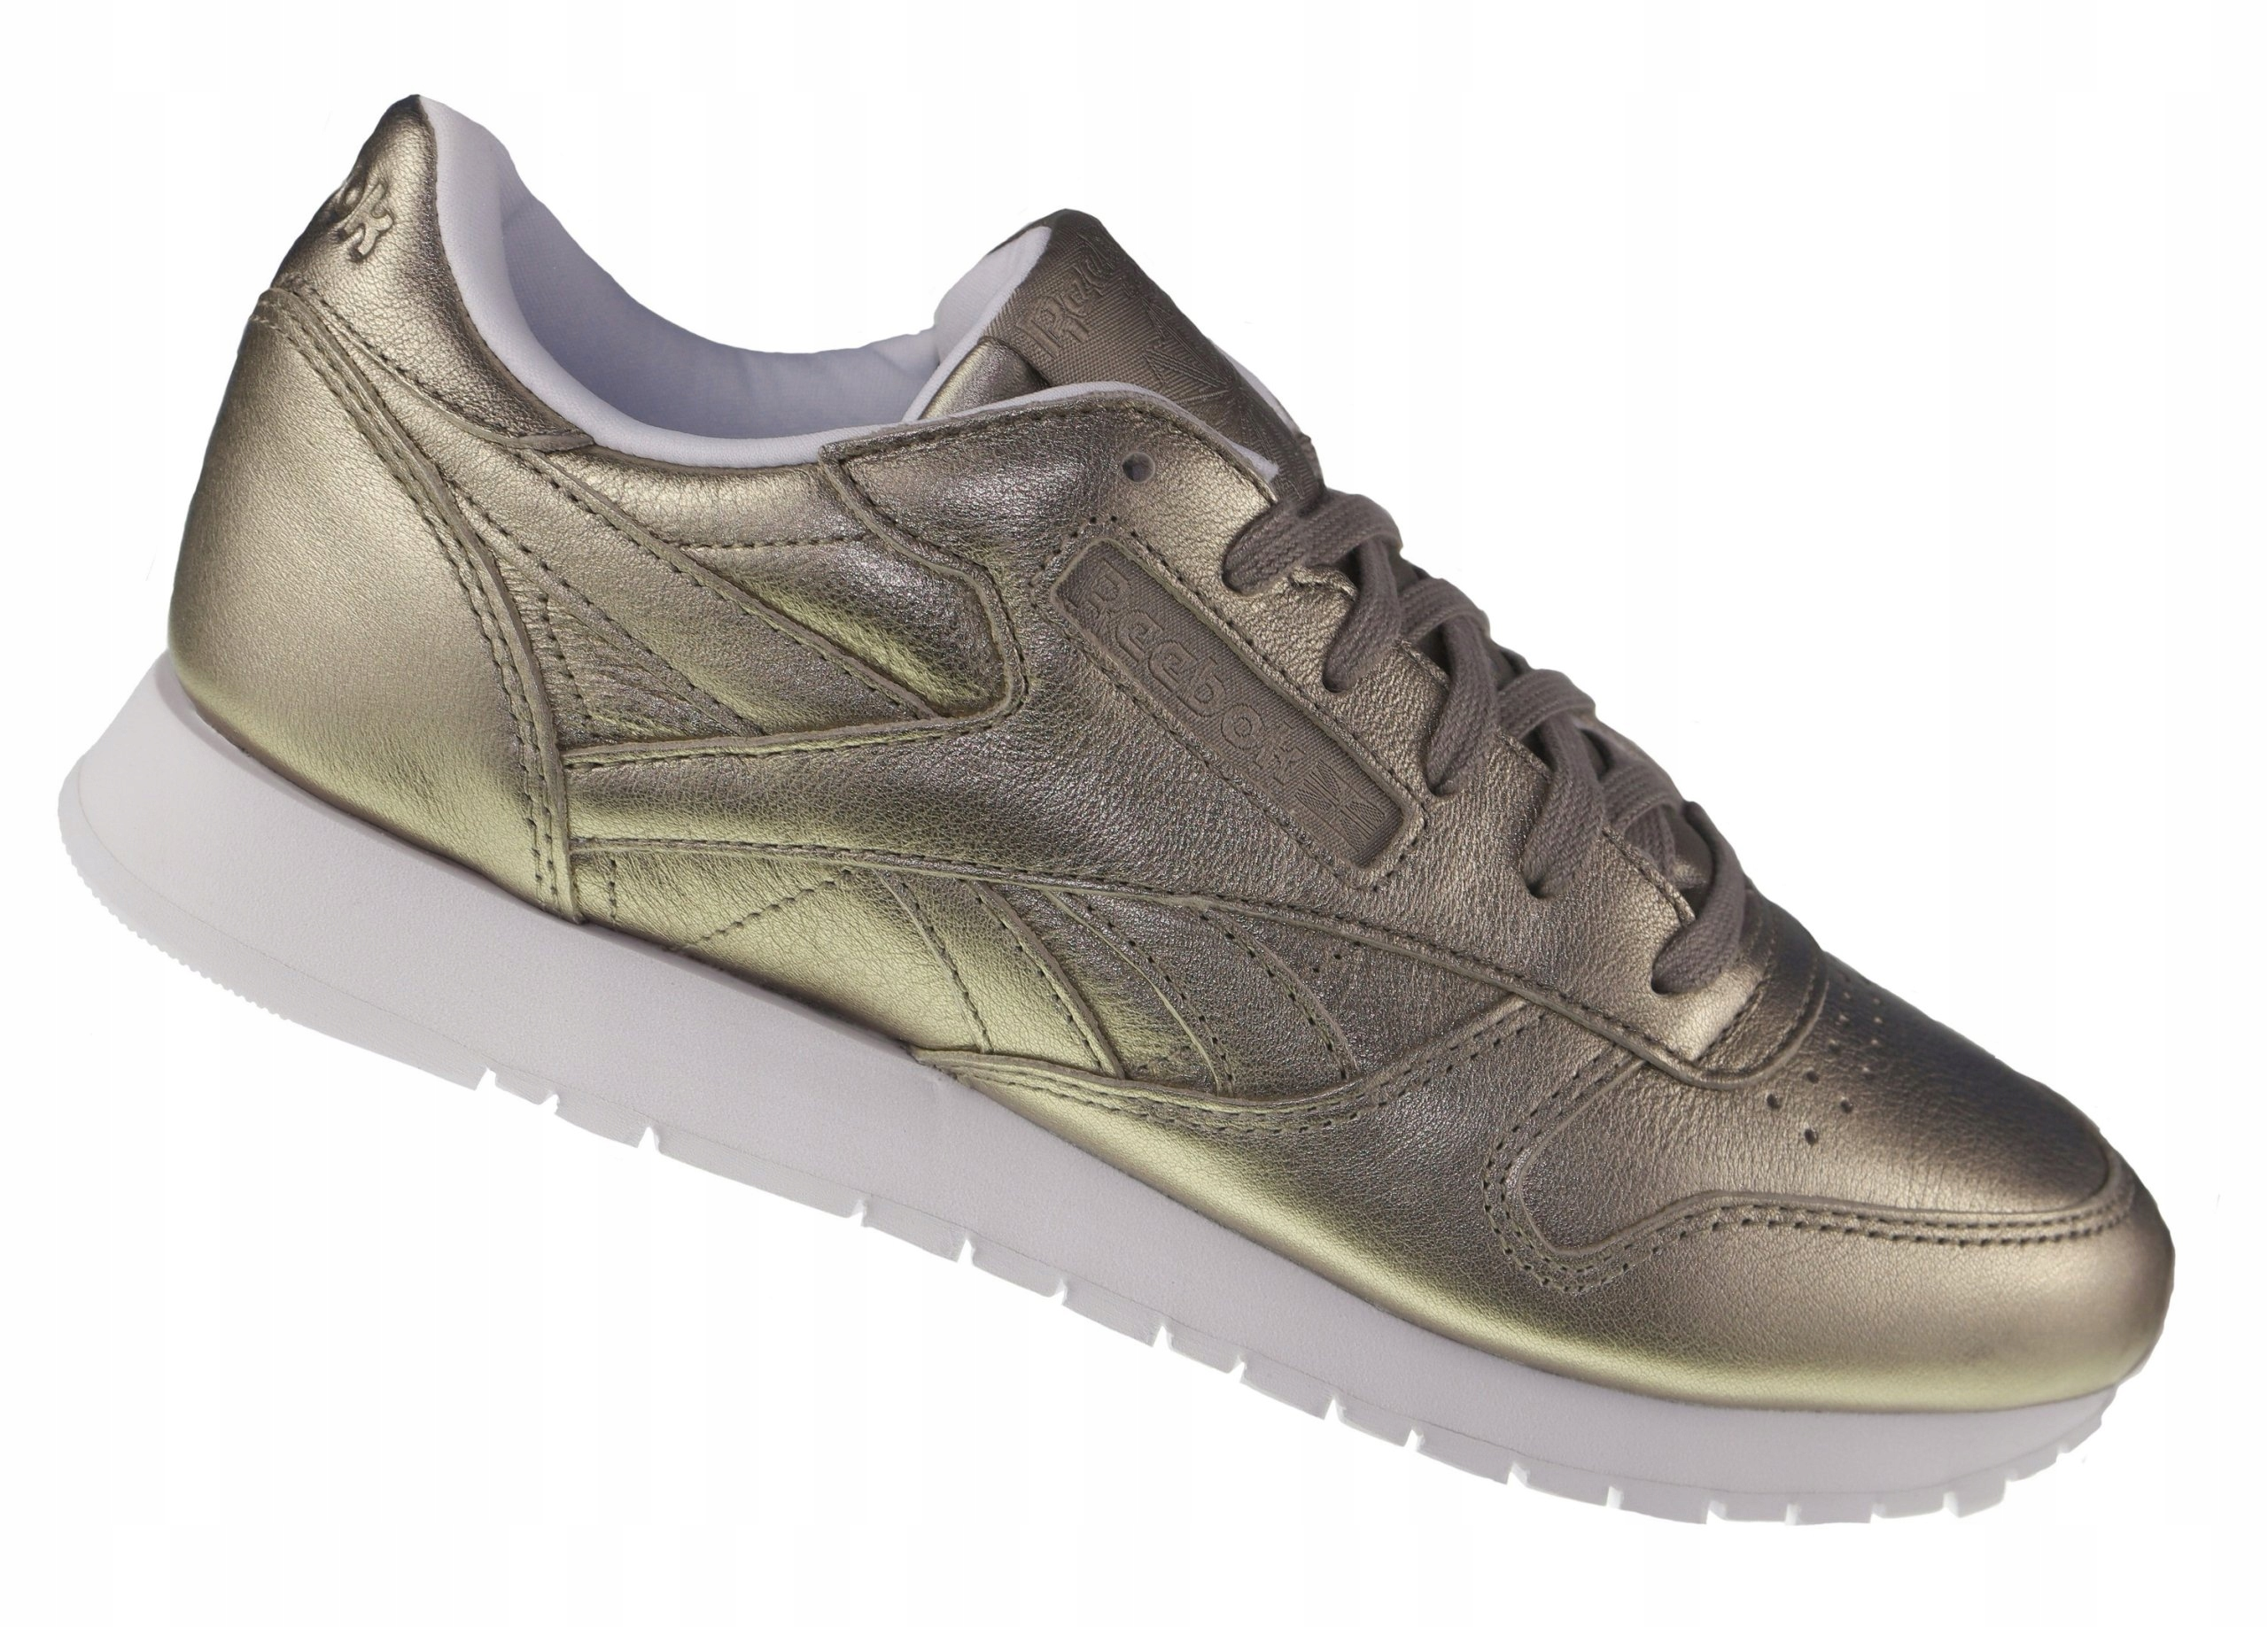 2b39648b REEBOK CLASSIC LEATHER MELTED METAL BS7898 R 40 - 6967187559 ...